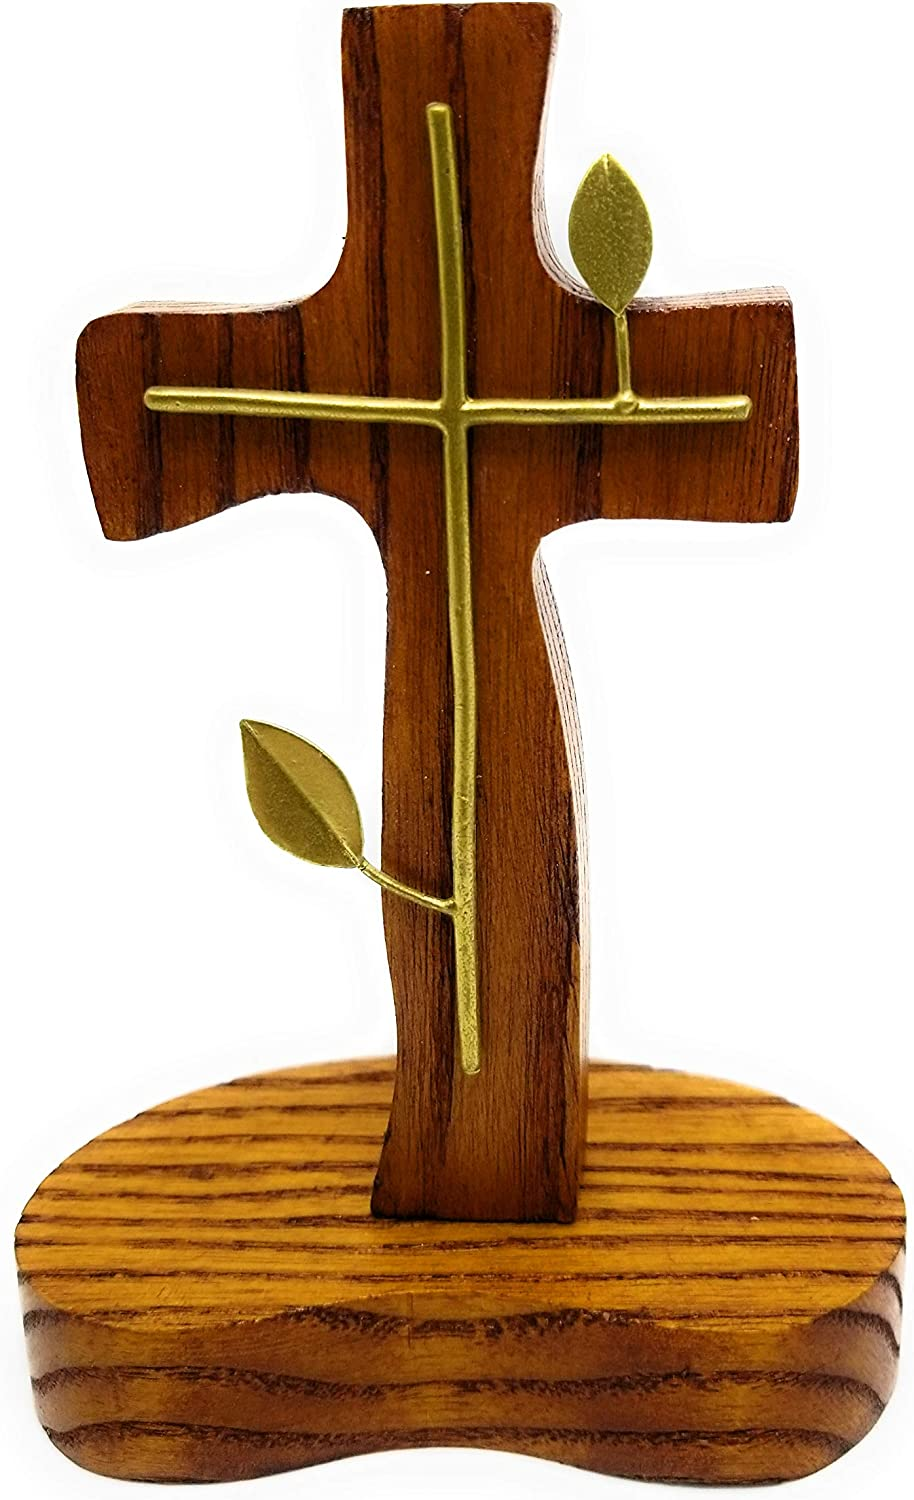 GoldenTBox Handmade Holy Standing Table Altar Wood Cross with Metal Detailing for Gift or Home Work Office Decor on Easter, Mother's Day, Father's Day, Christmas, Wedding Anniversary (Brass cross)